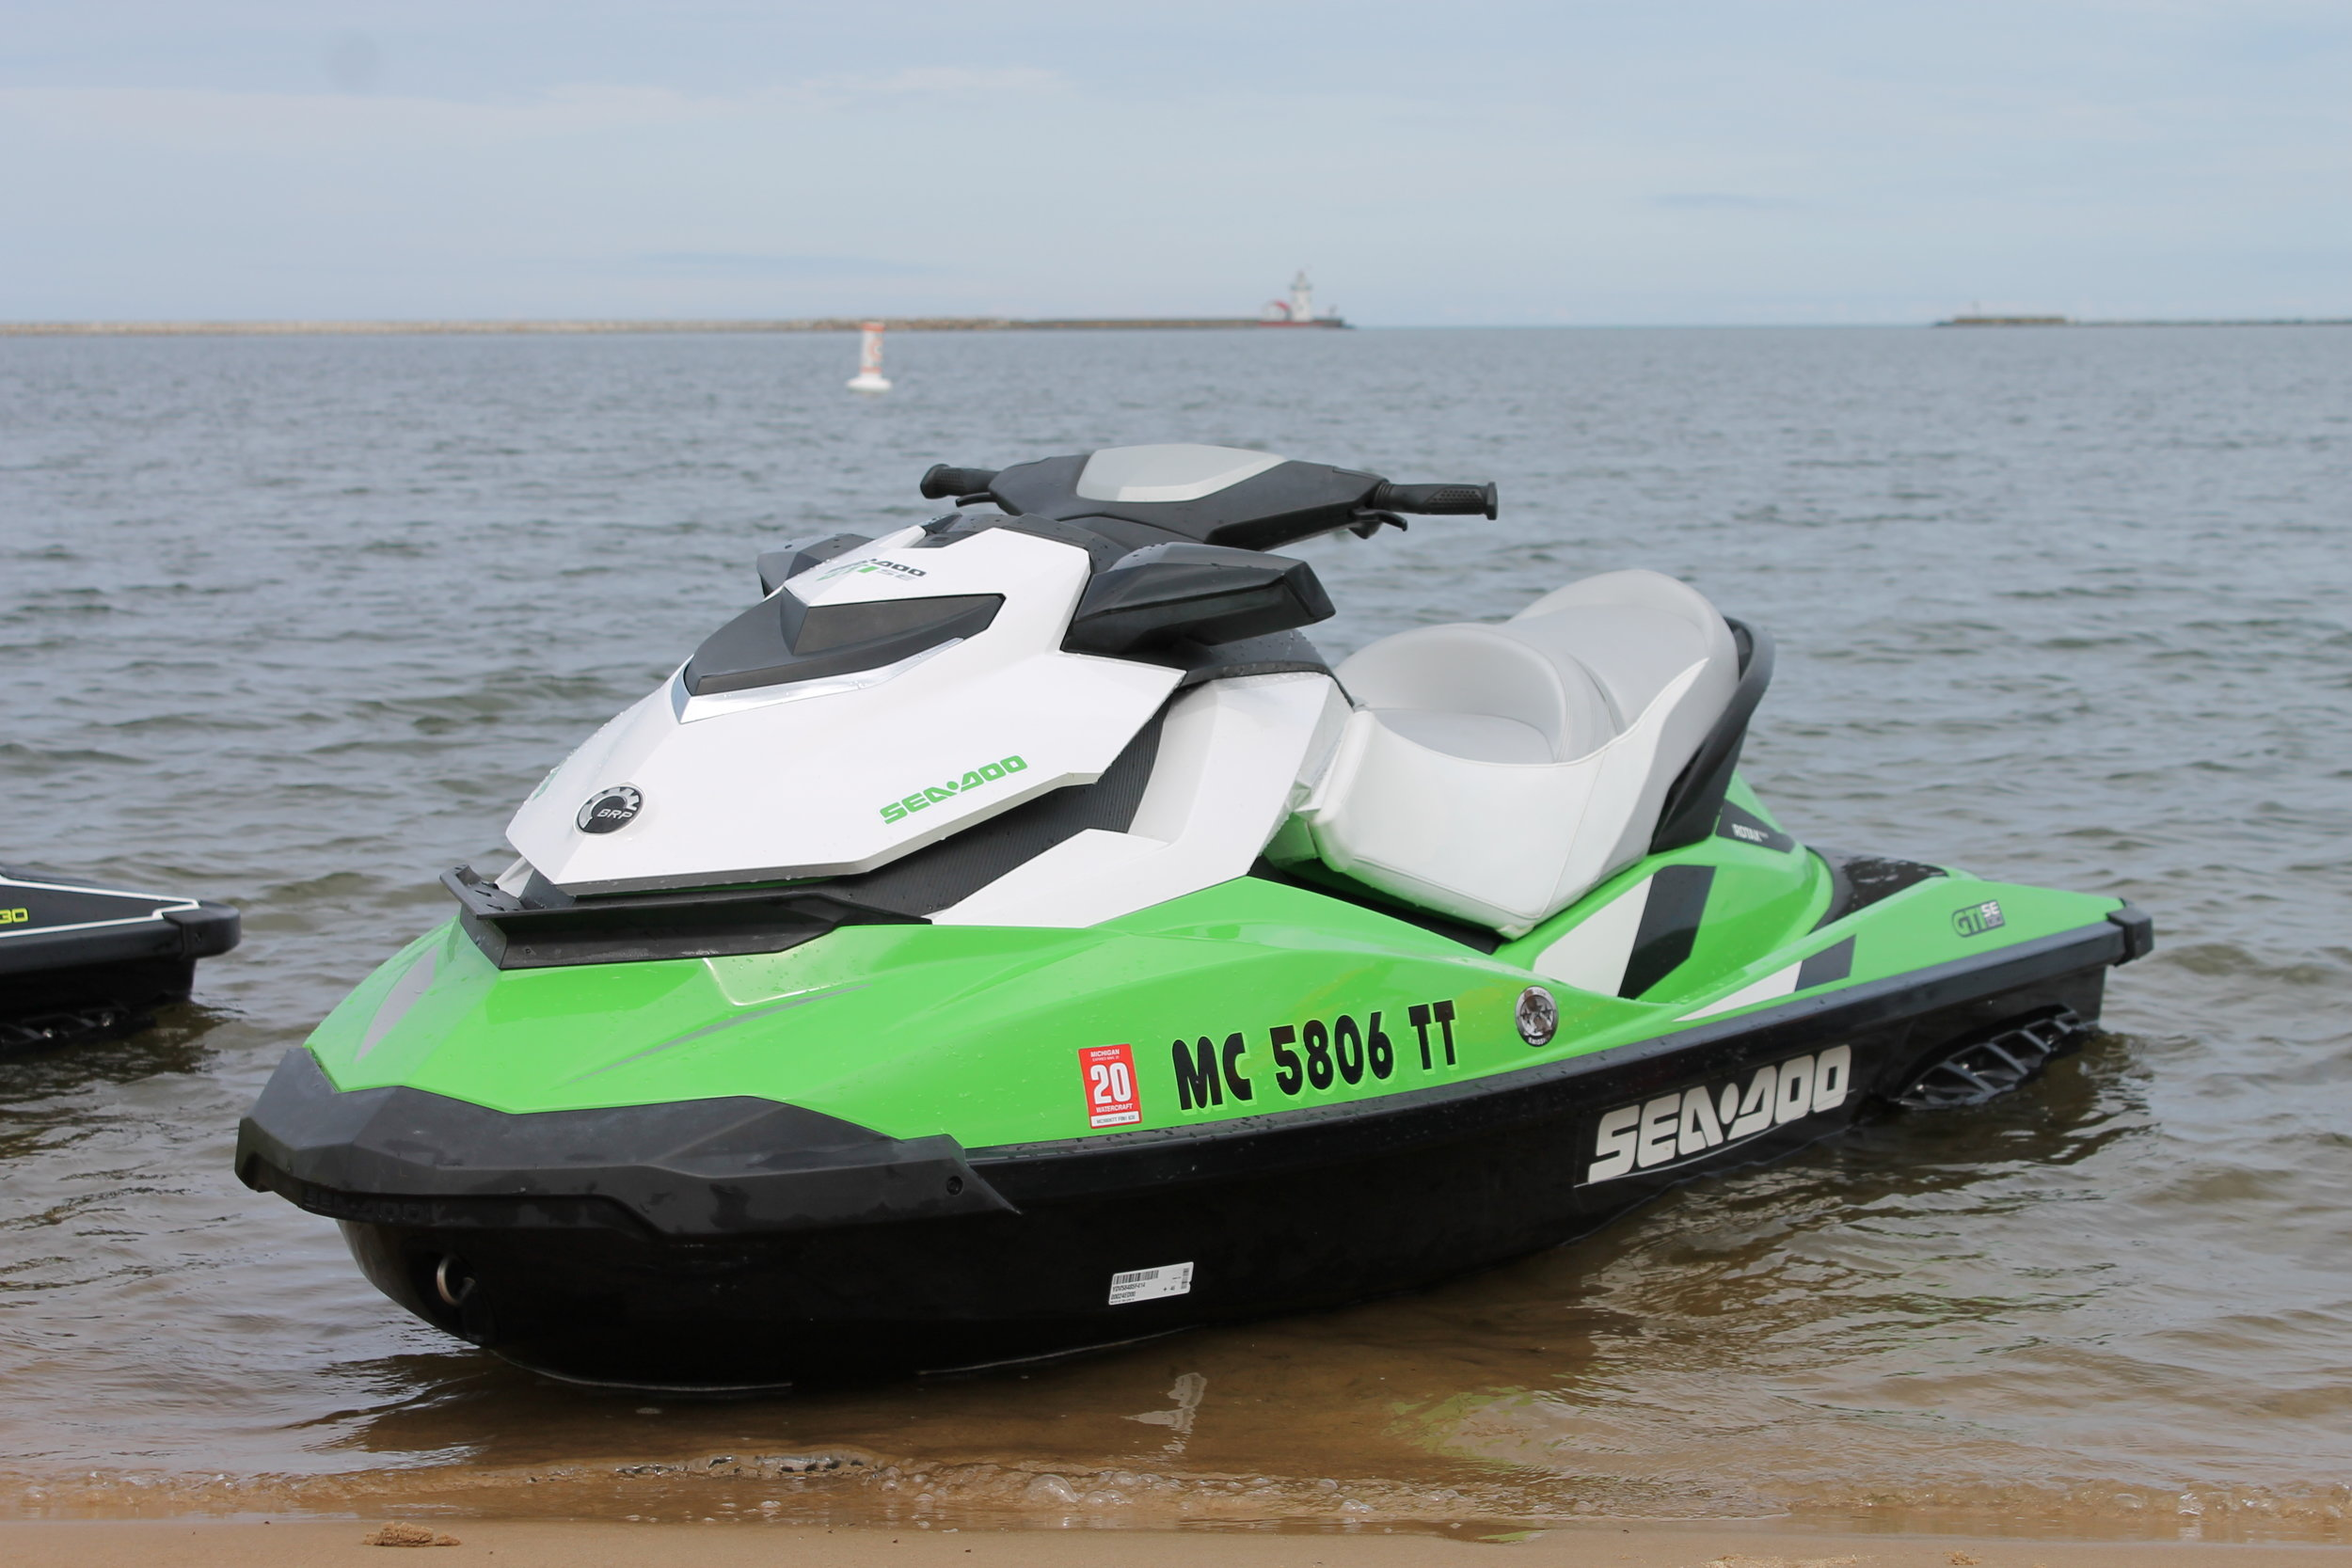 The Green - 2014 SEA DOO GTI 130 SE3 cylinder, 4 stroke, electric start, automatic, reverse3 seats, 132.6 in x 48.5 in, 15 gallon gas tank capacityautomatic trim